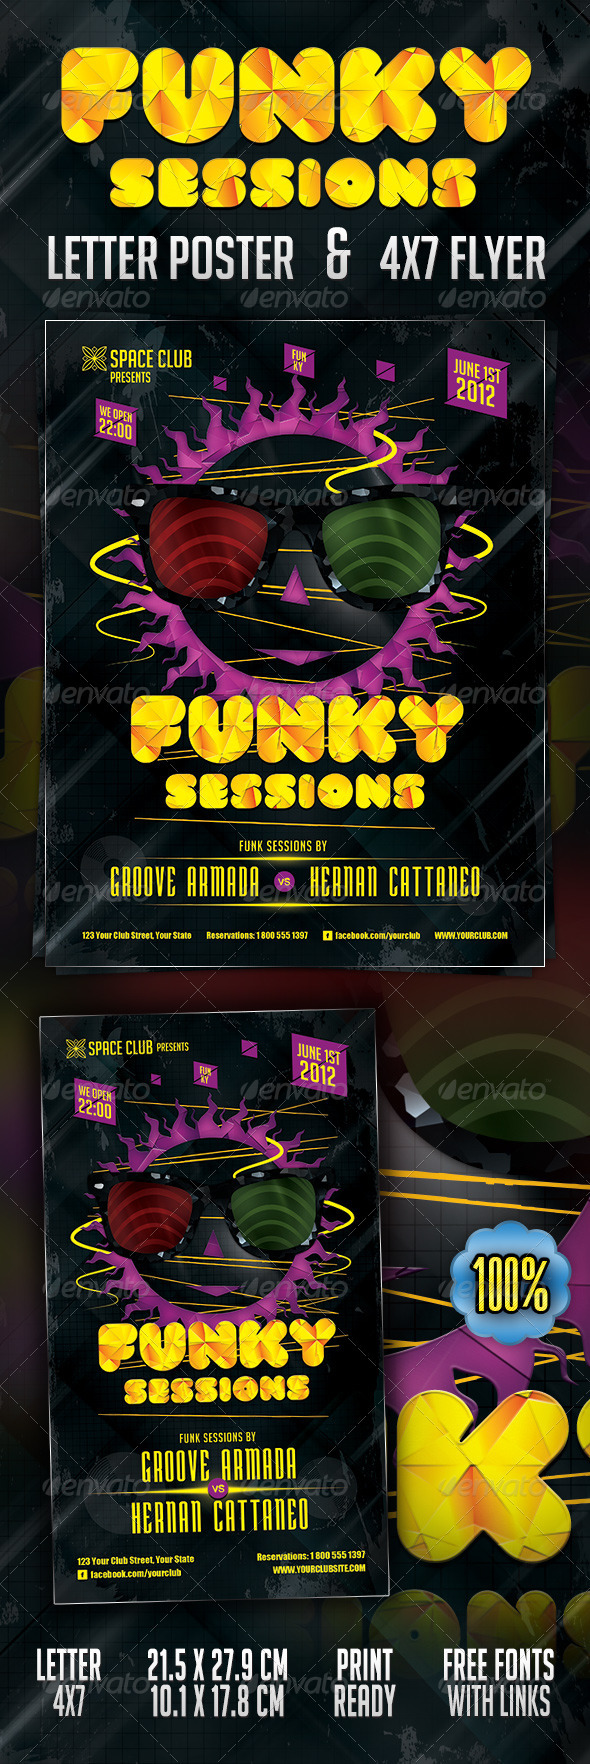 Funky Sessions Poster & Flyer - Clubs & Parties Events